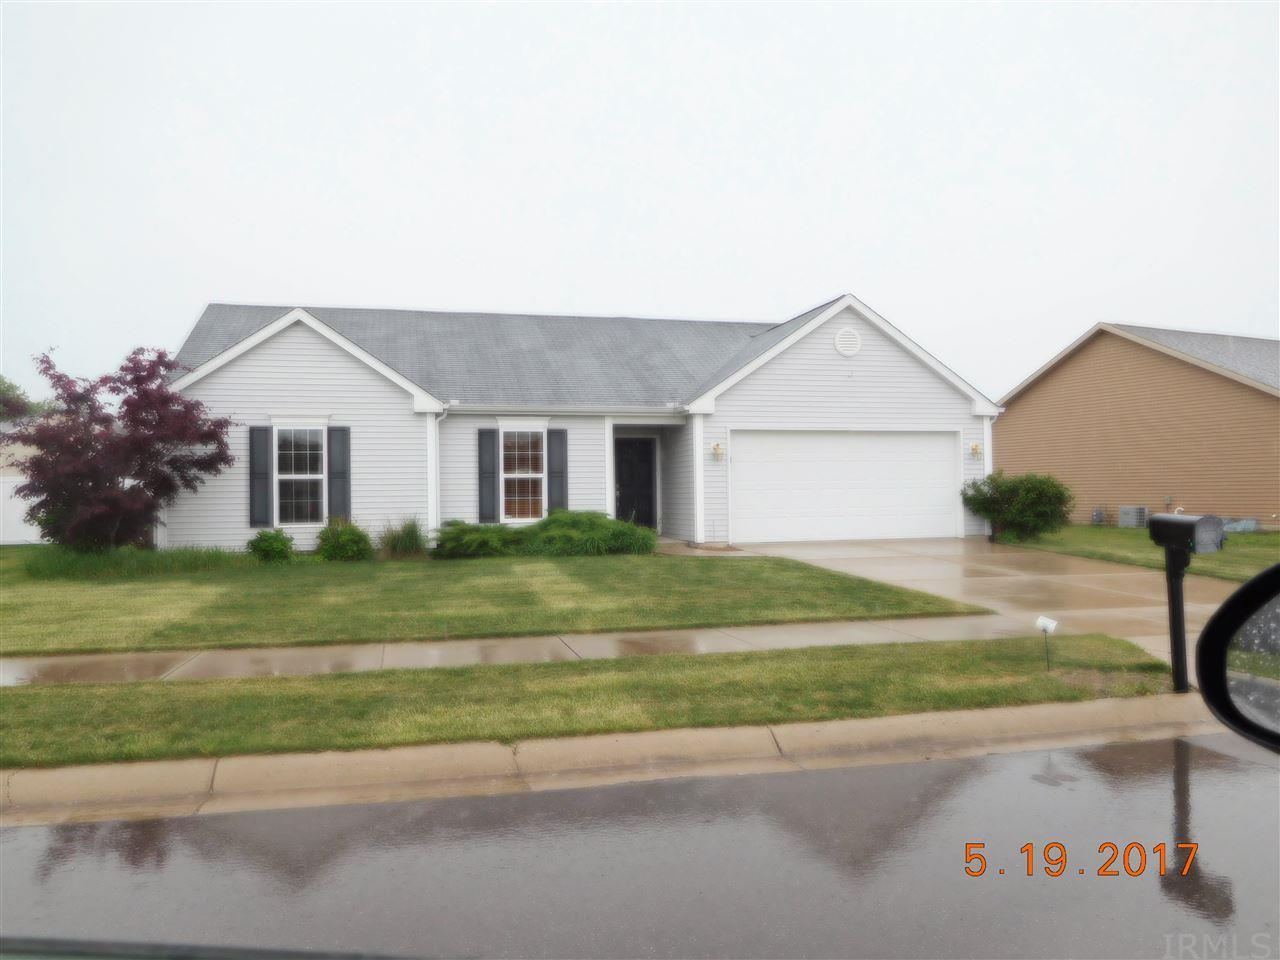 23094 Rumford, South Bend, IN 46628